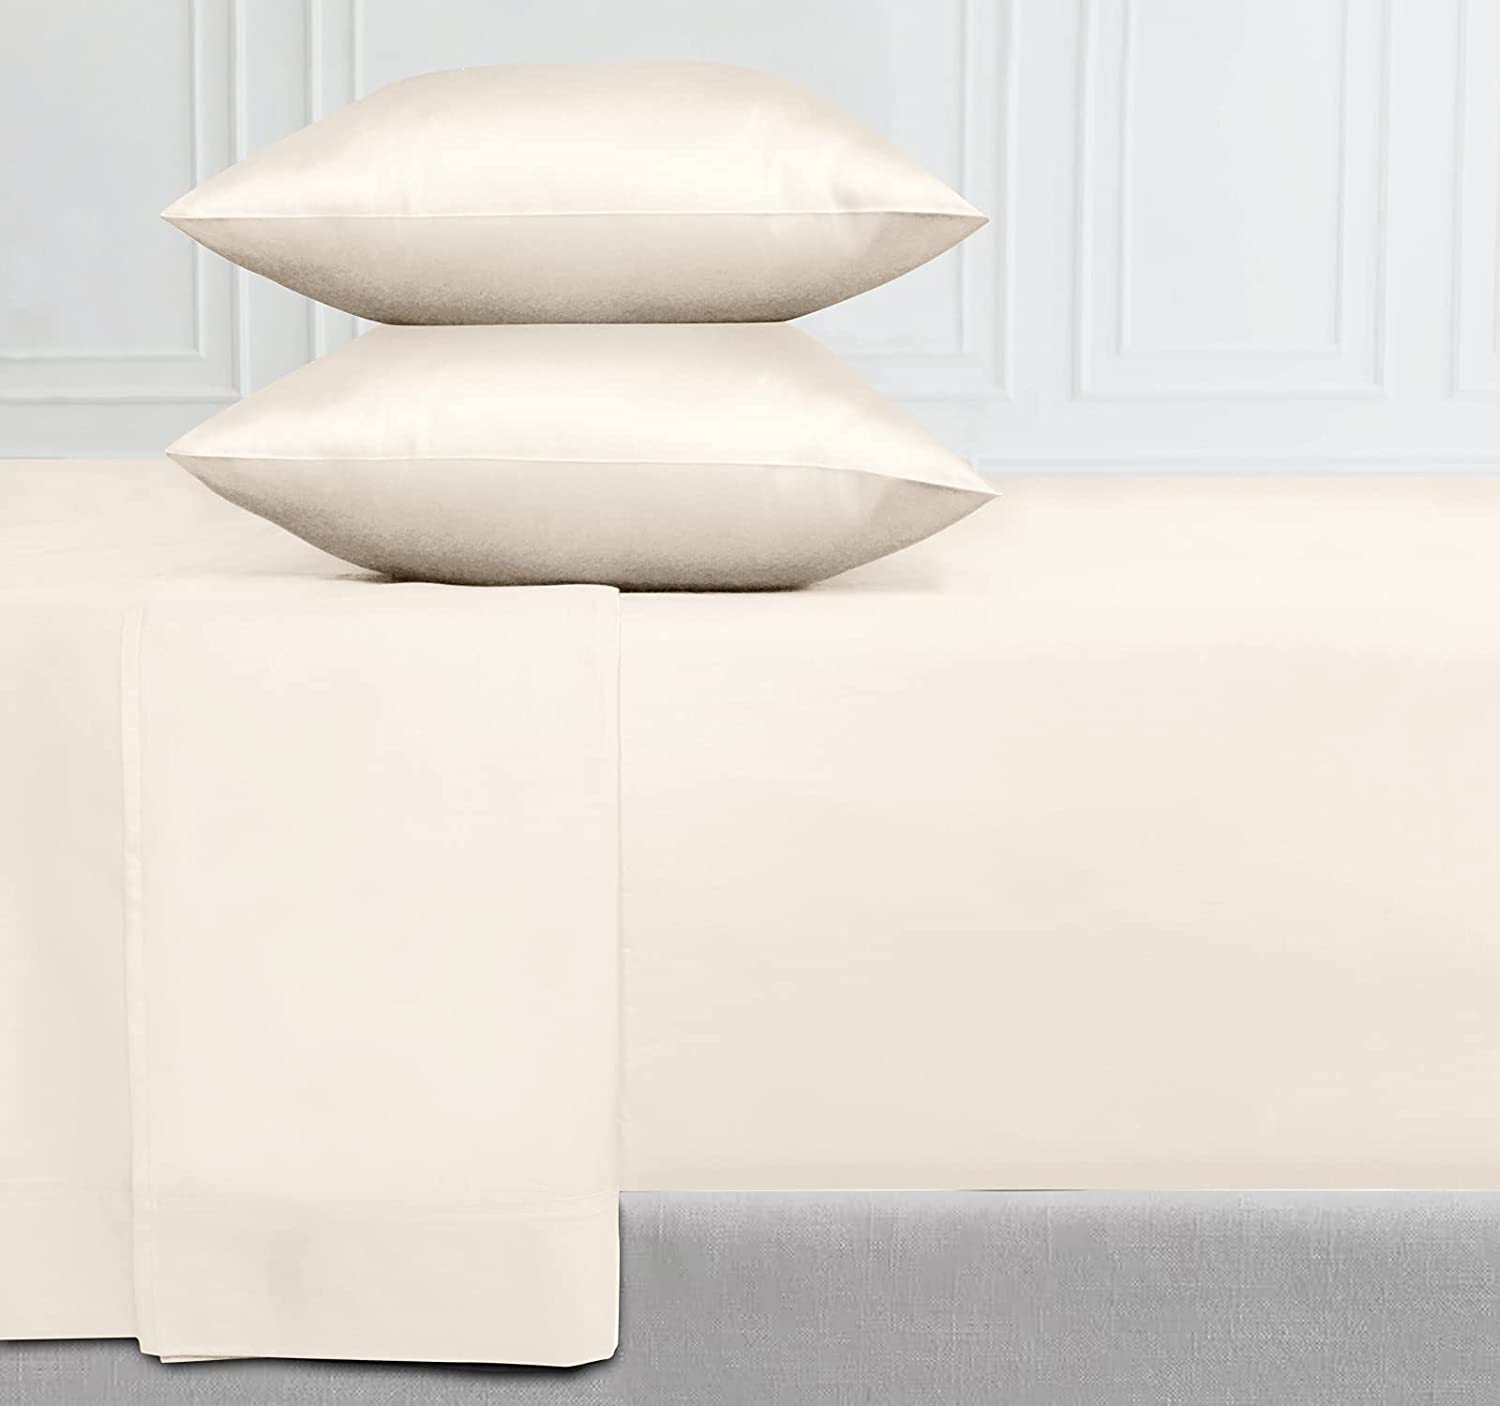 400-Thread-Count 100% Pure Cotton Sheets - 4-Piece Ivory Color King Sheet Set Long-Staple Combed Cotton Bed Sheets Breathable Sateen Weave Flat Sheets Fits Mattress 16'' Deep Pocket : Home & Kitchen